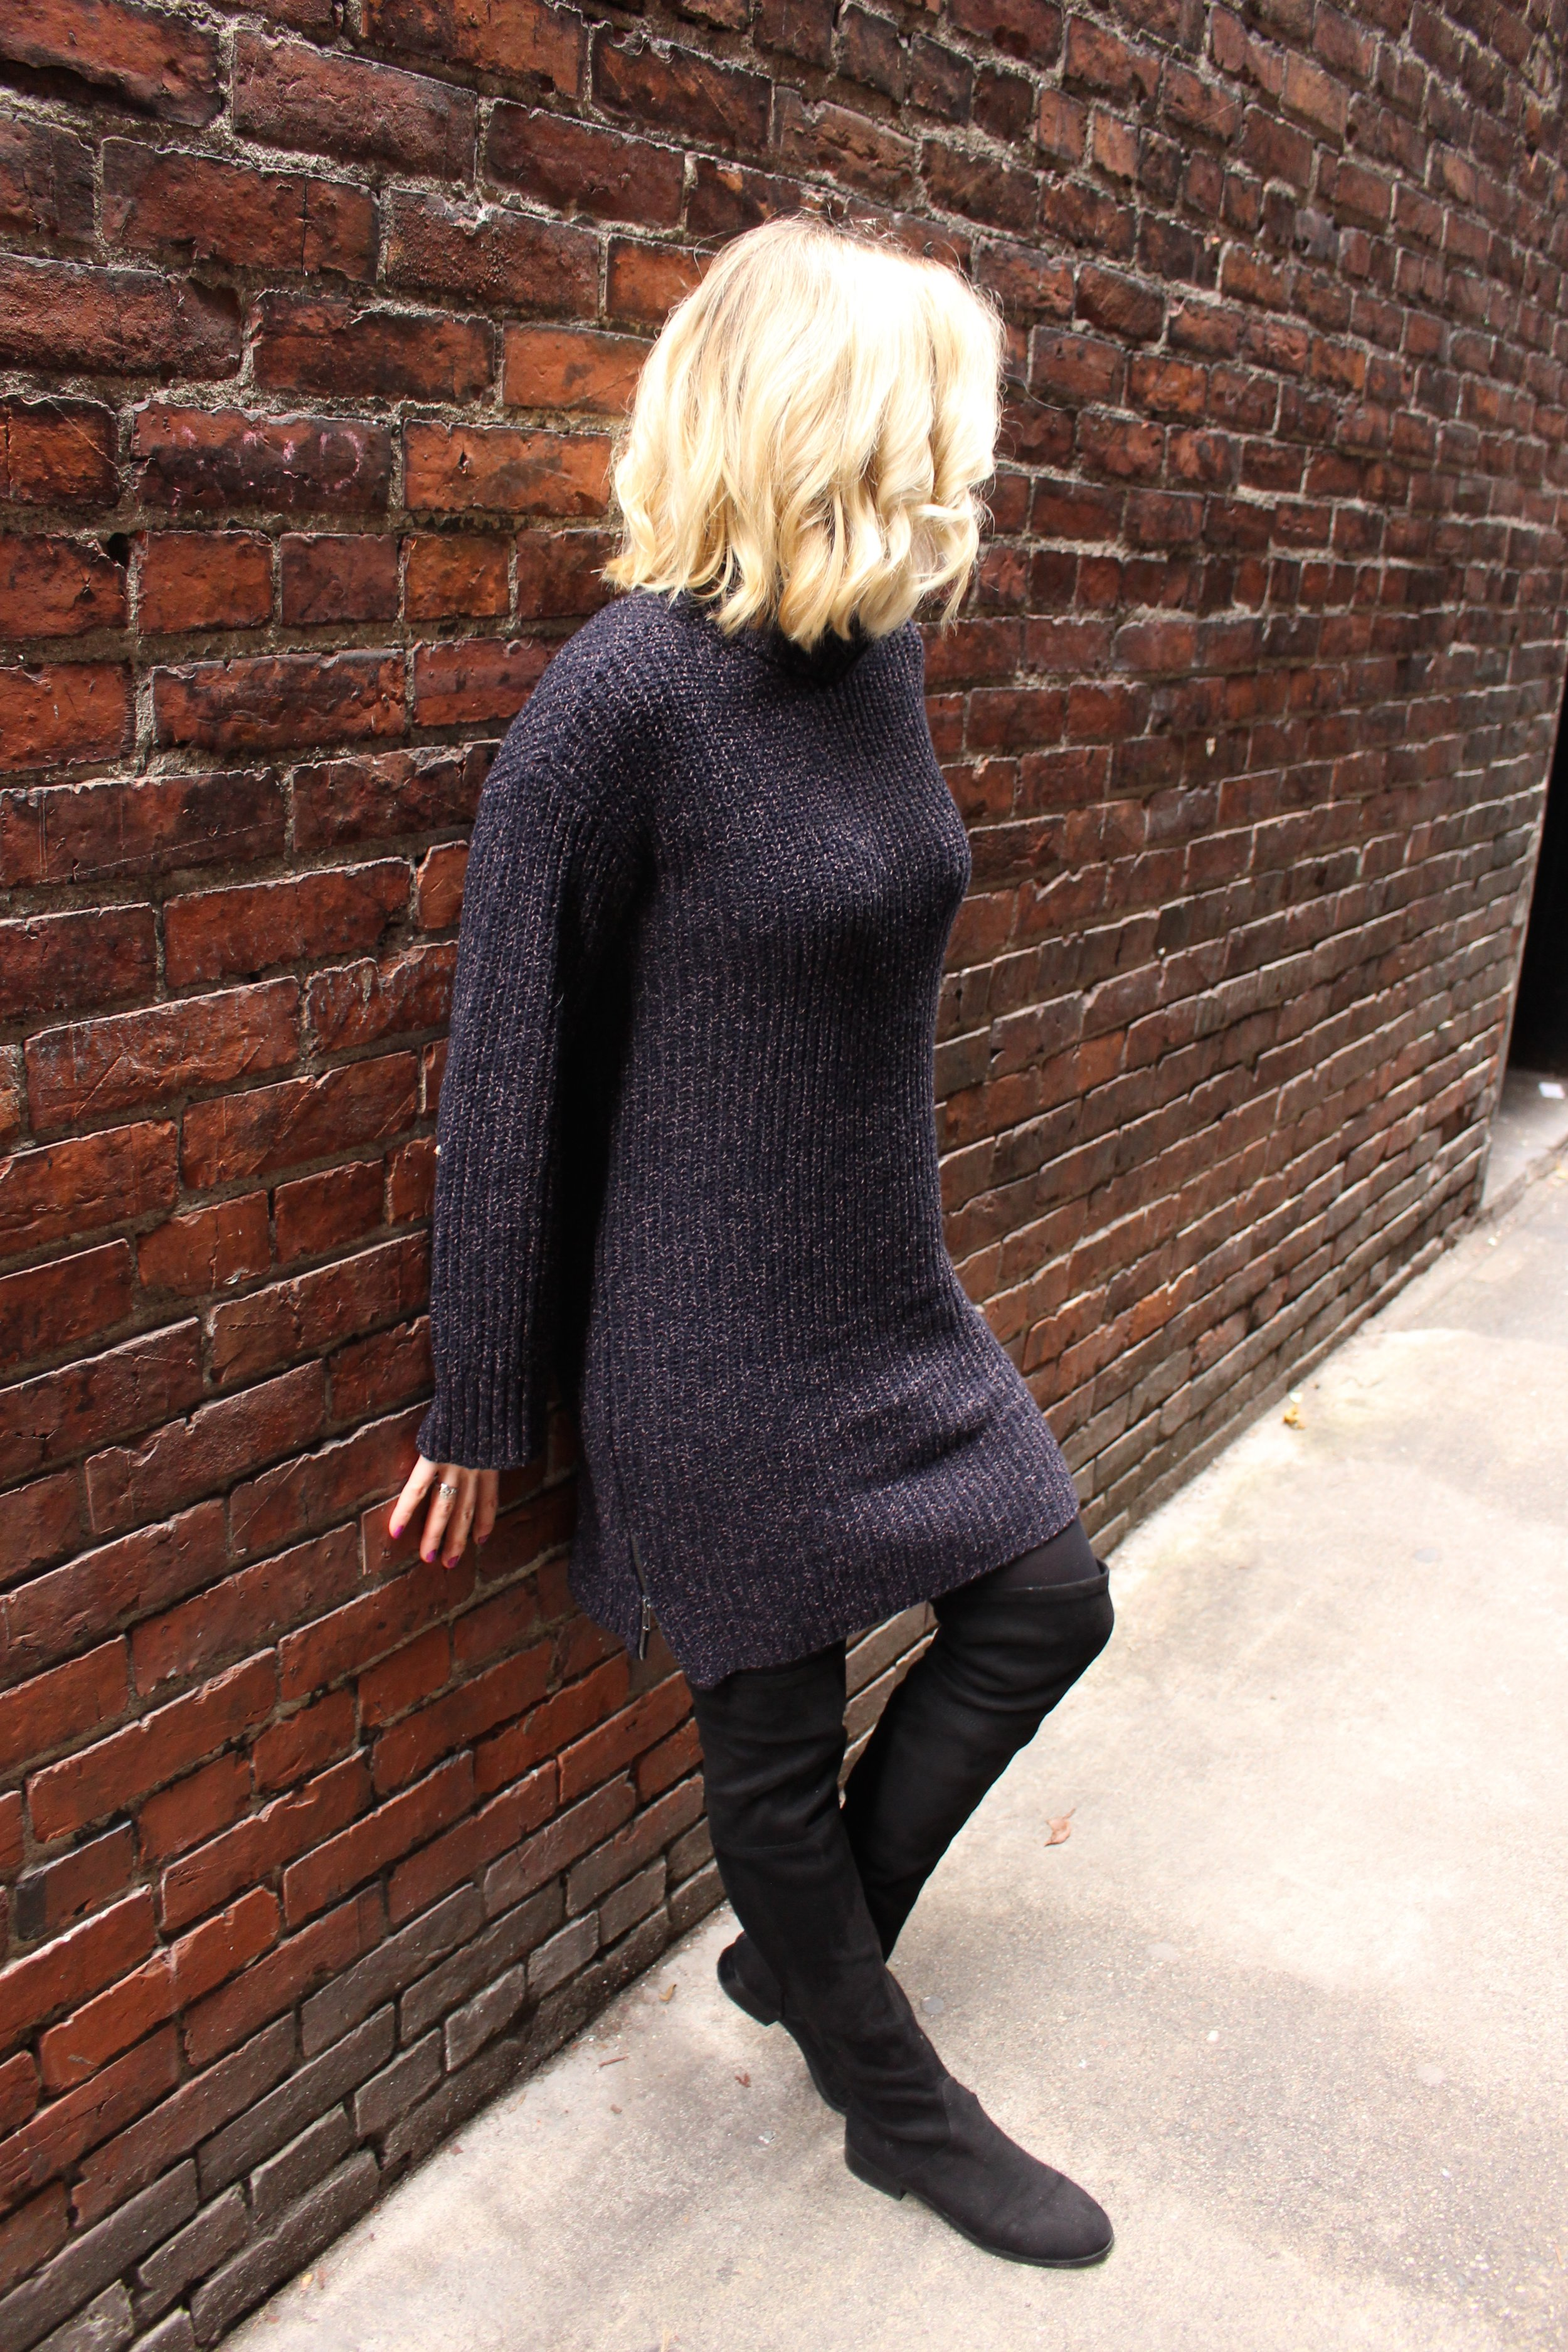 American Eagle    Sweater Dress,   Avon    Opaque Tights,   Steve Madden   Suede Over the Knee Boots,   Essie    Flowerista Nail Polish